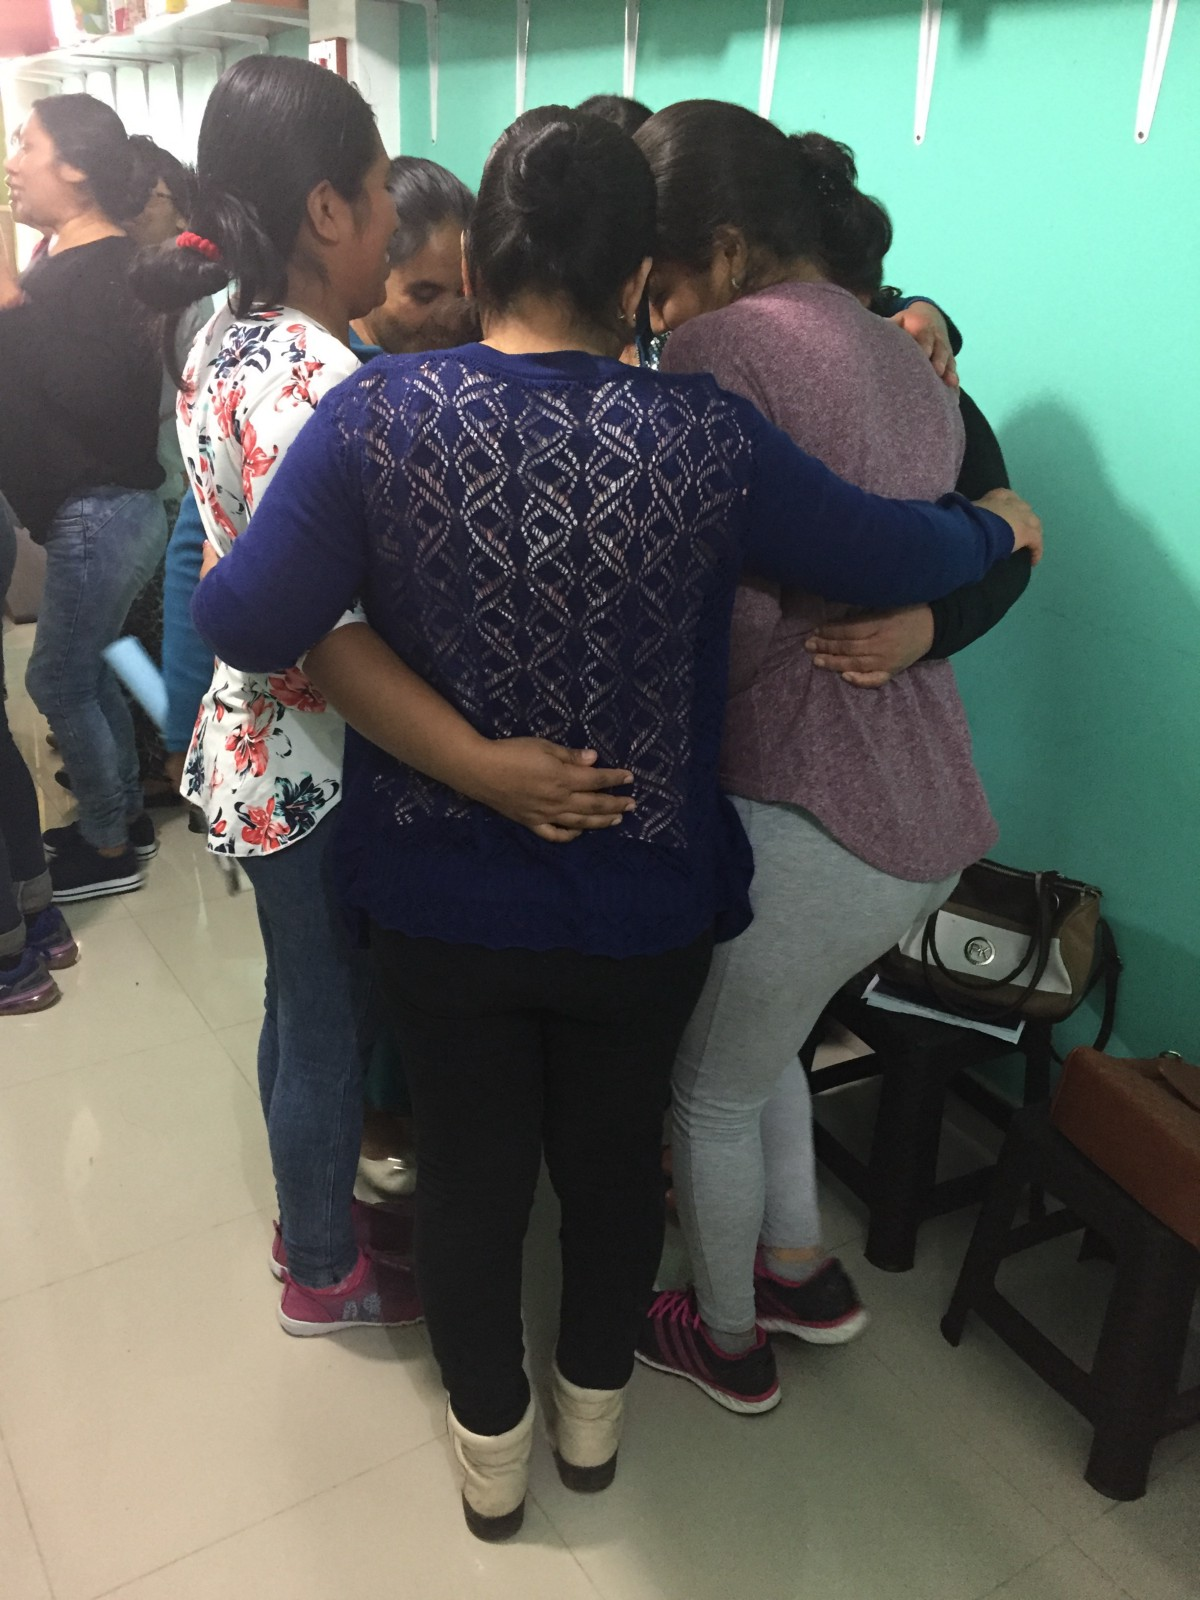 Mothers from rehabilitation with hope support one another.